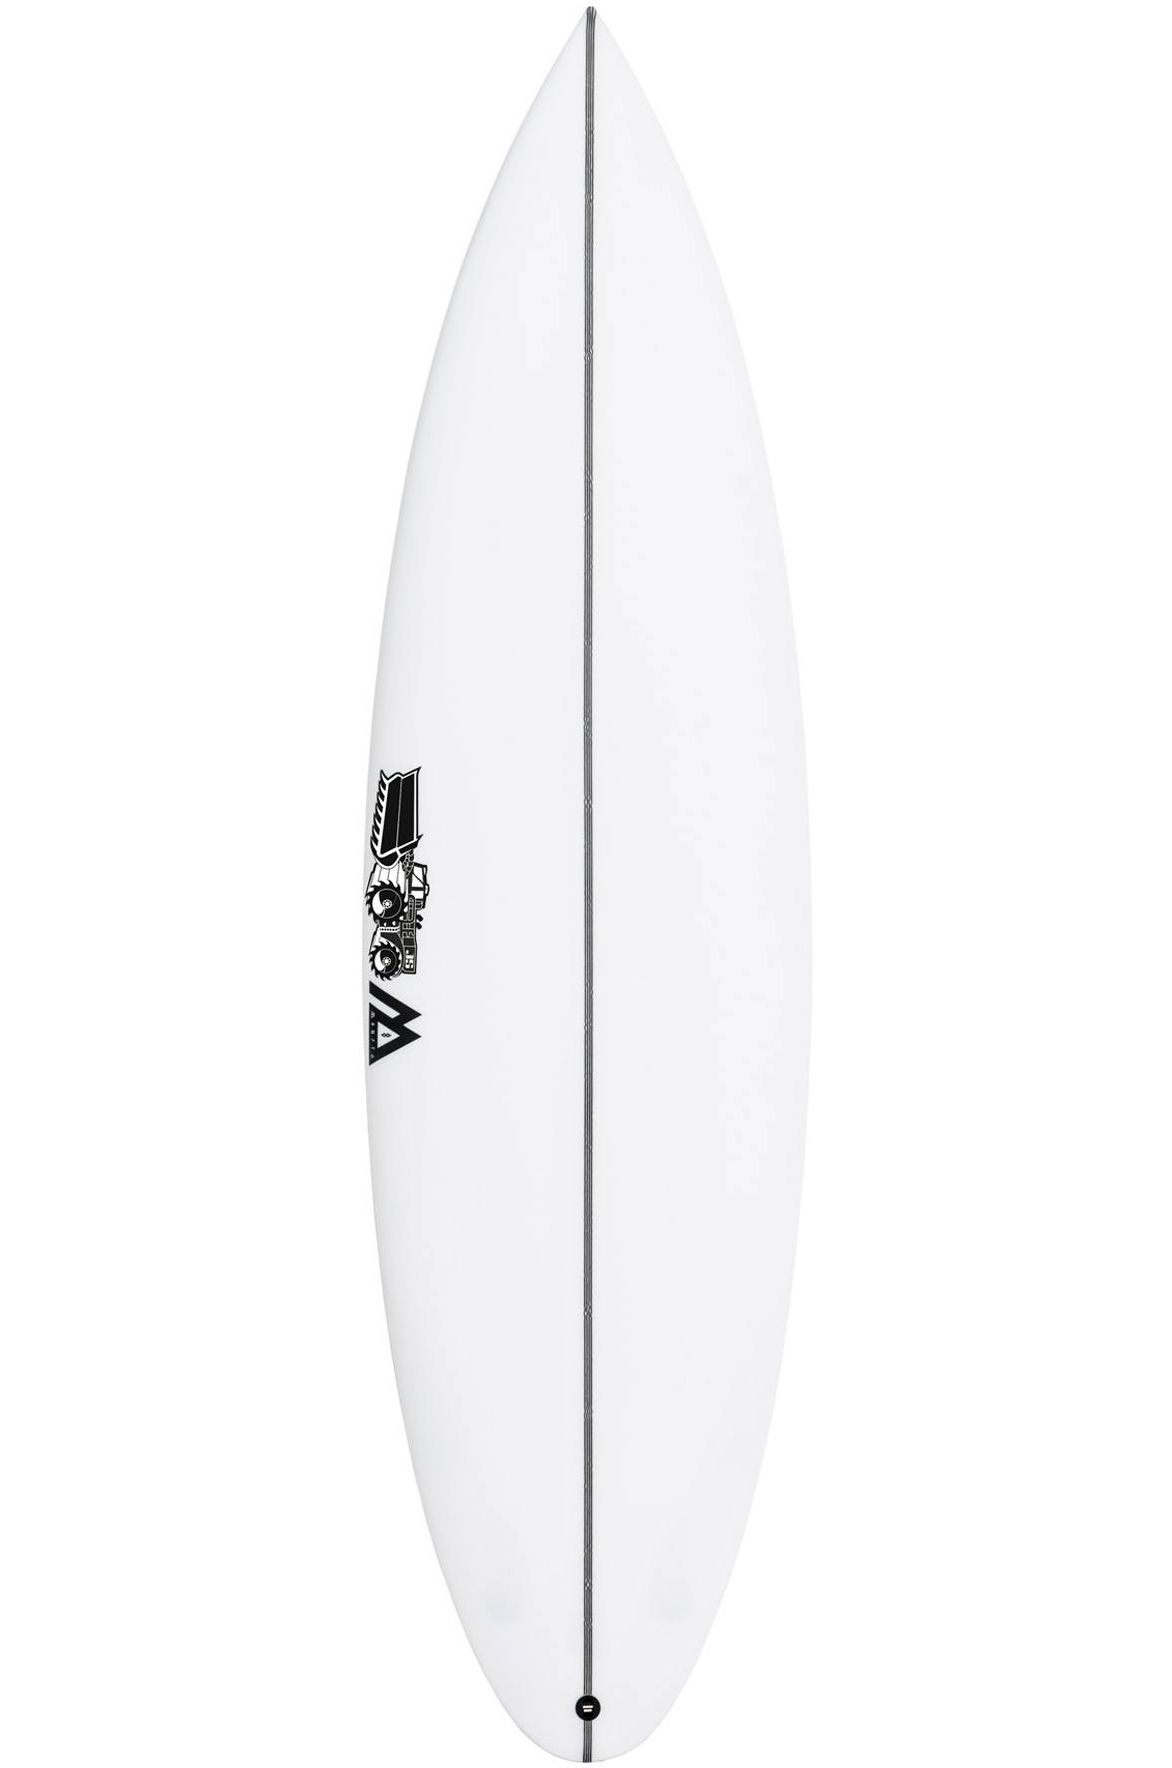 Prancha Surf JS MONSTA 8 5'8 Round Pin Tail - White FCS II Multisystem 5ft8